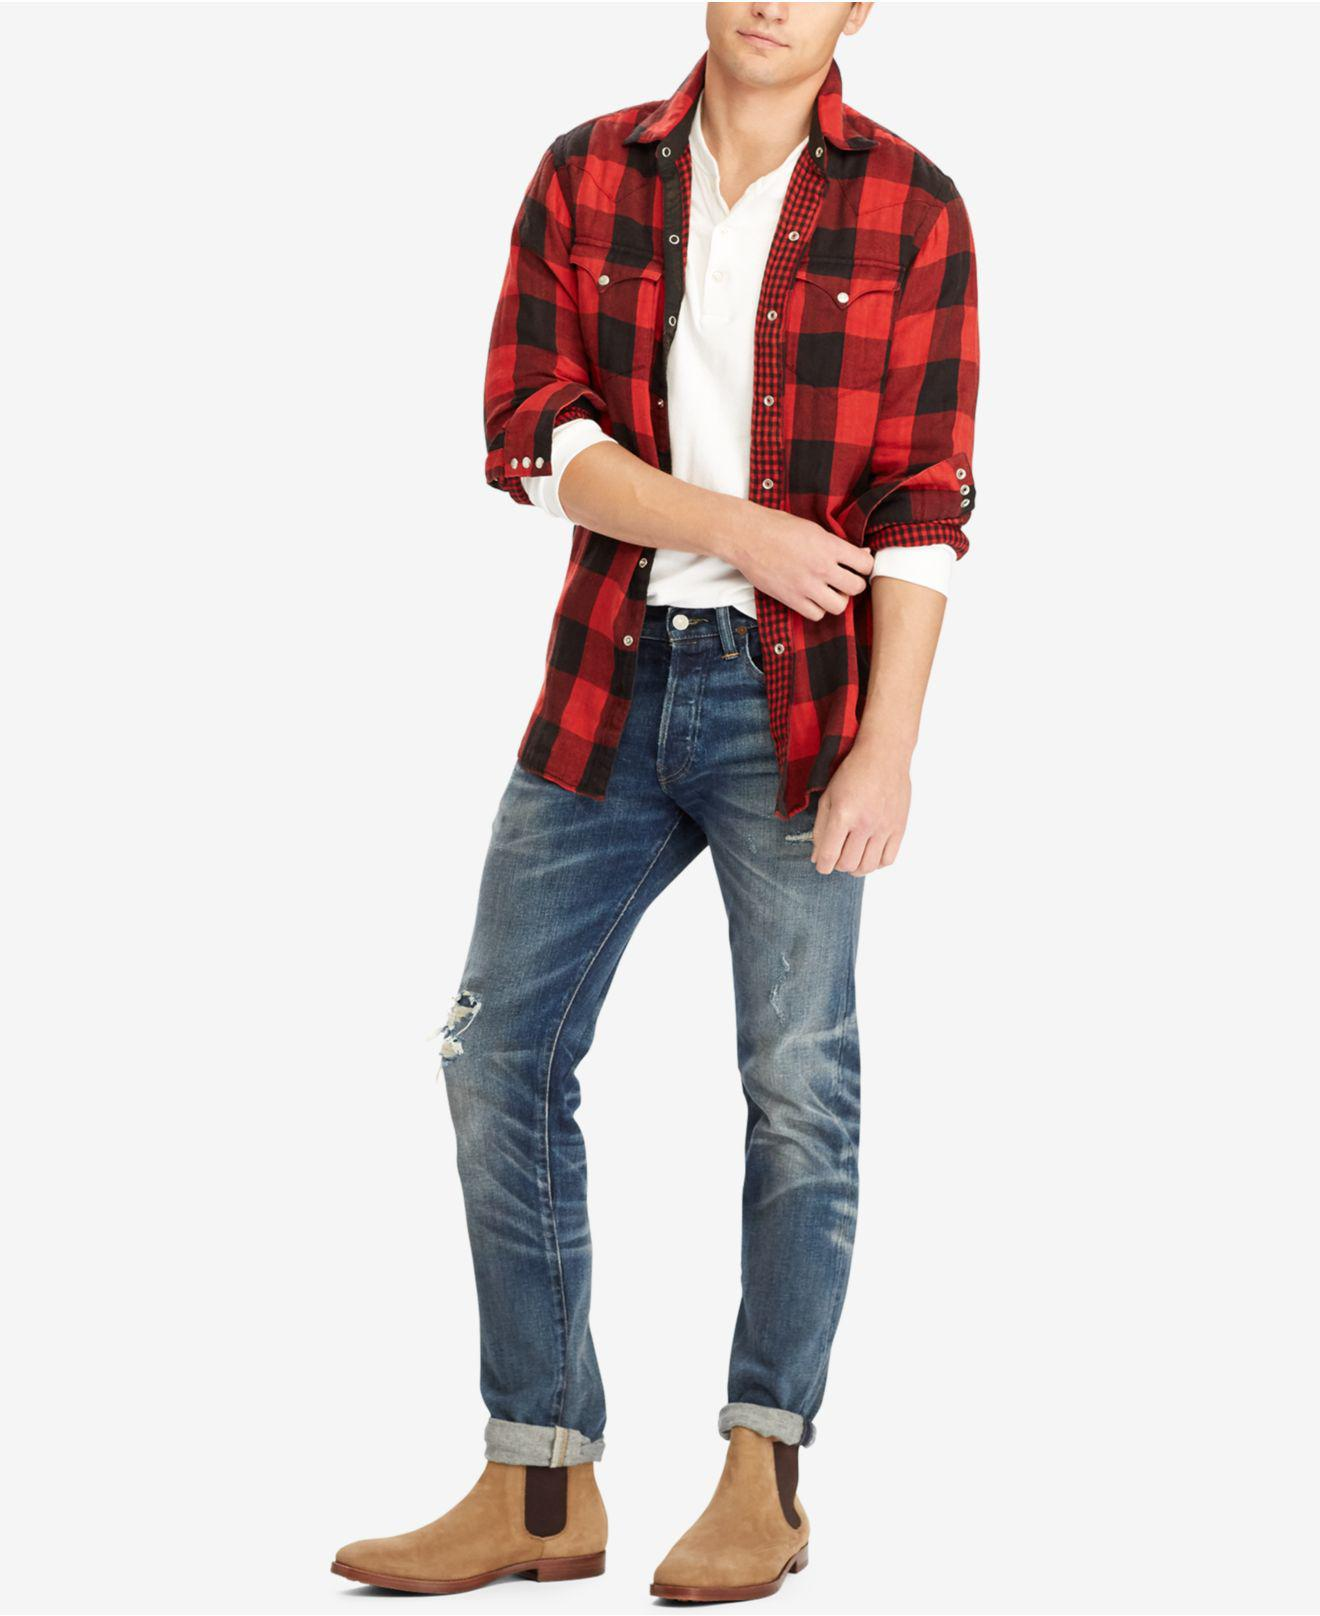 d0b807cd7 Polo Ralph Lauren Men's Iconic Flannel Shirt in Red for Men - Lyst